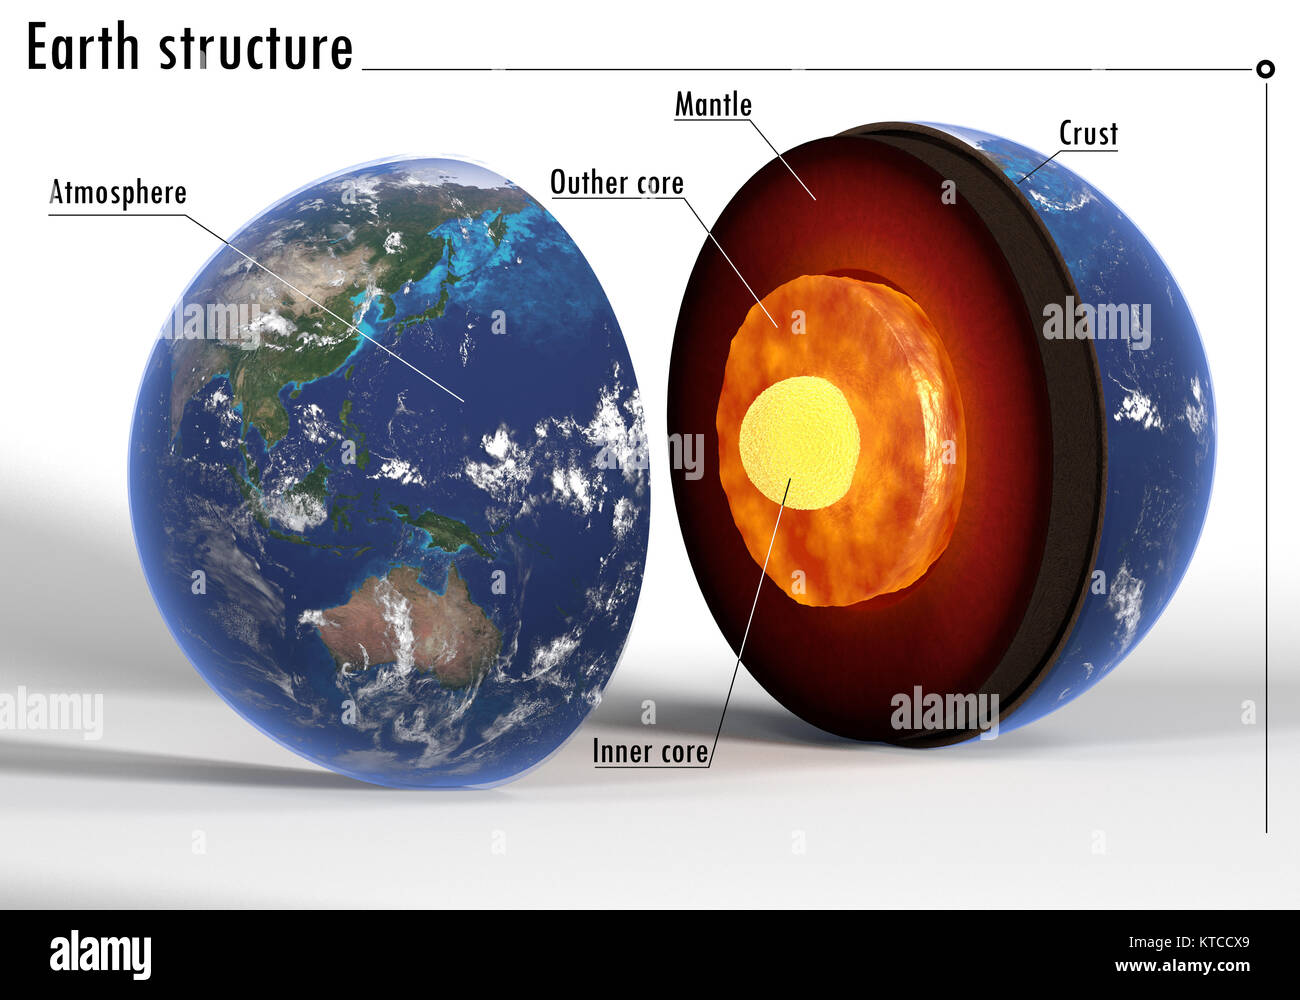 Earth Crust Layers Stock Photos Amp Earth Crust Layers Stock Images